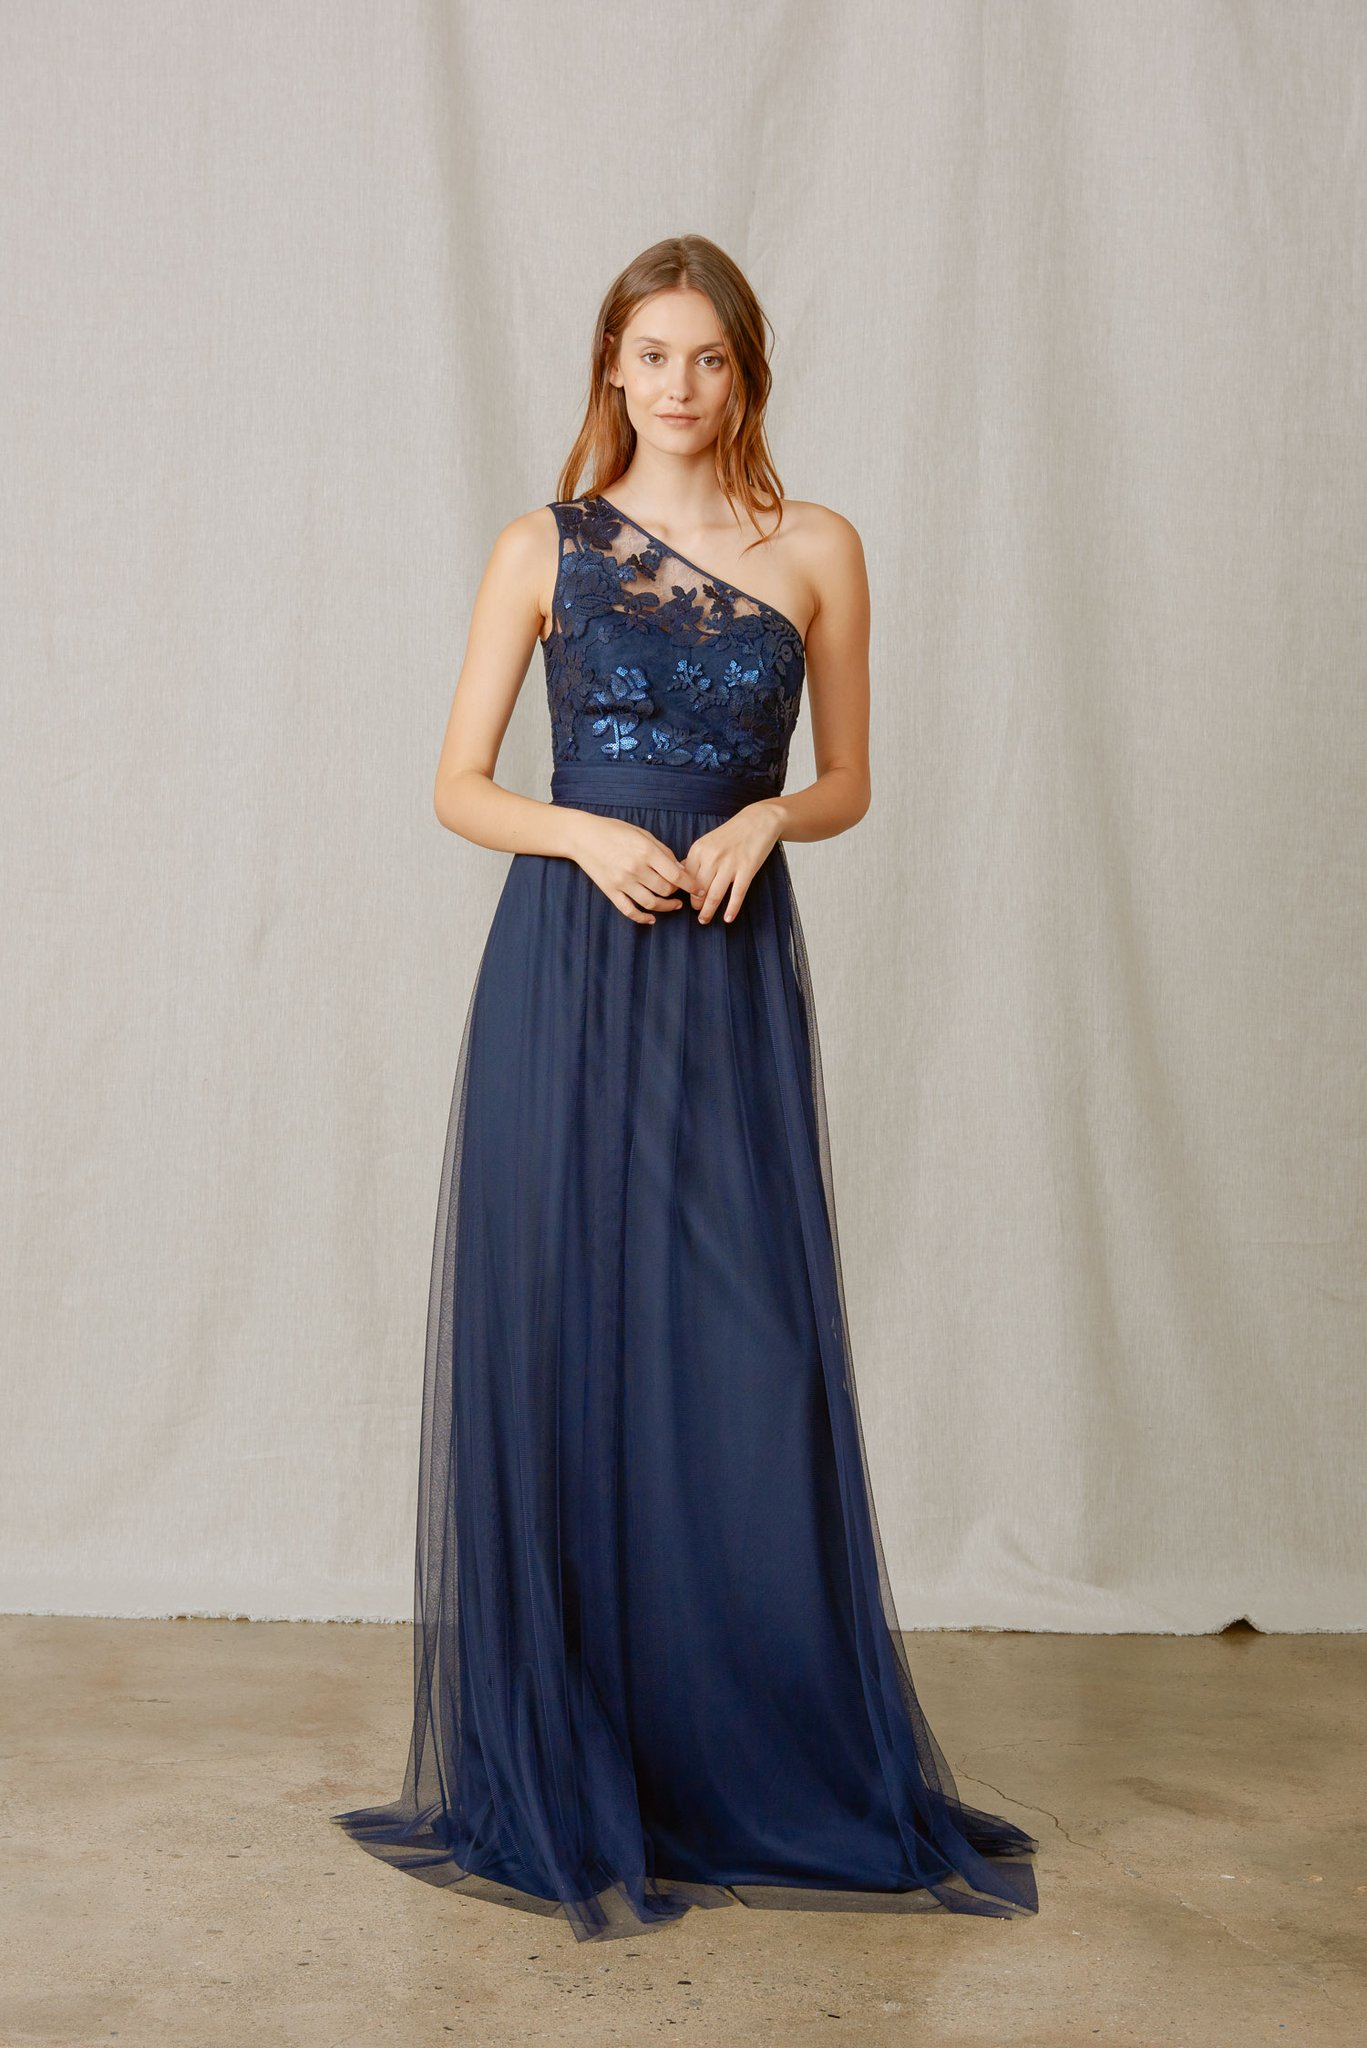 Ashlynn style by Amsale Bridesmaids in sequin lace and tulle